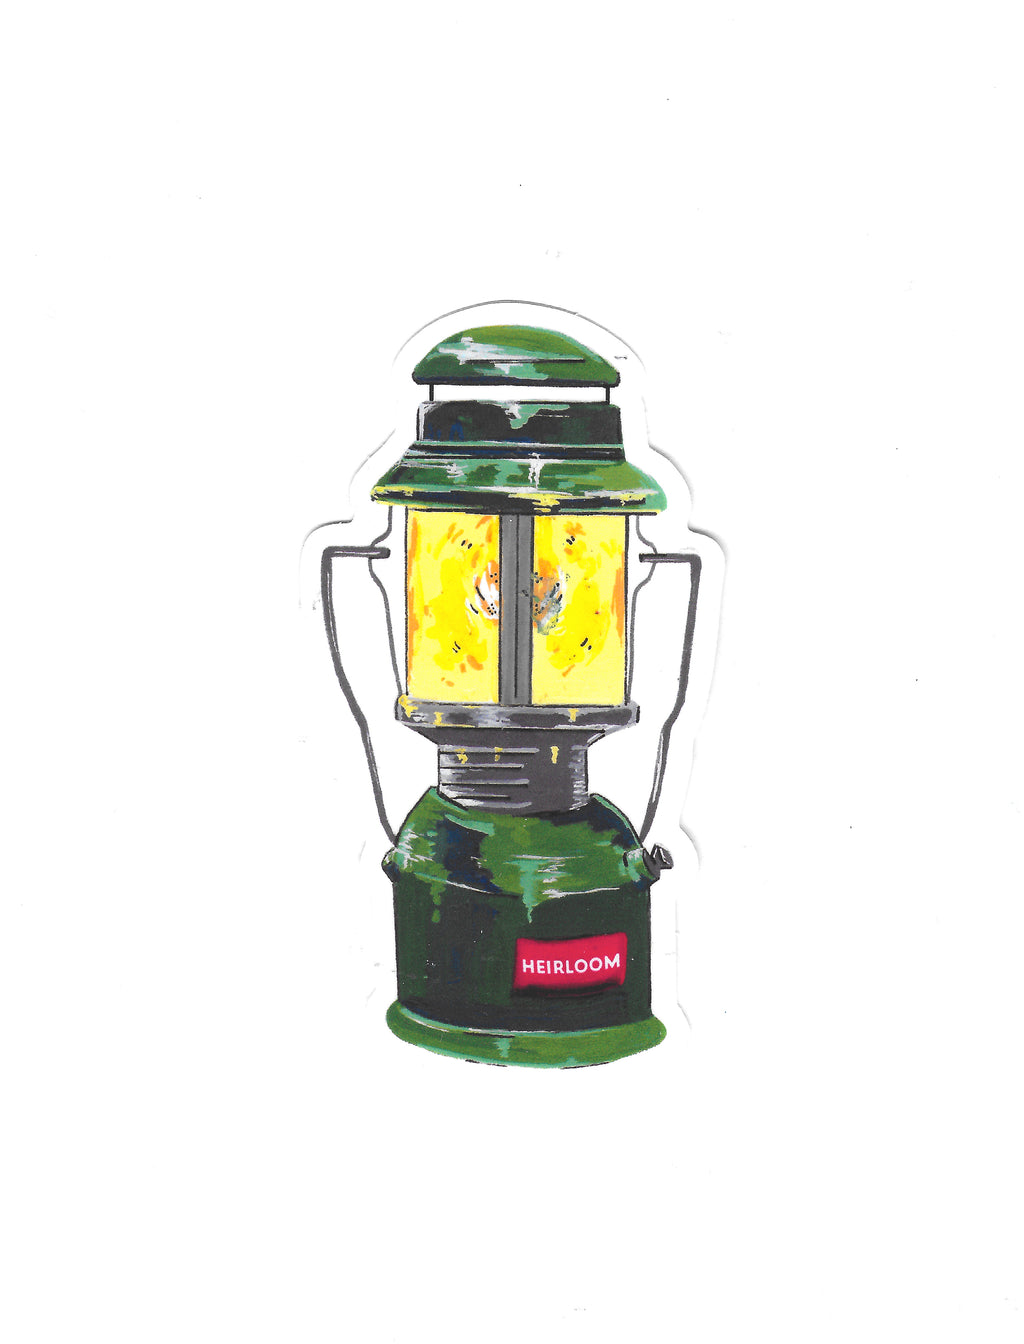 A vinyl sticker featuring a vintage camping lantern design that has been hand painted. It is painted to look like it is glowing. It is green with a red label.